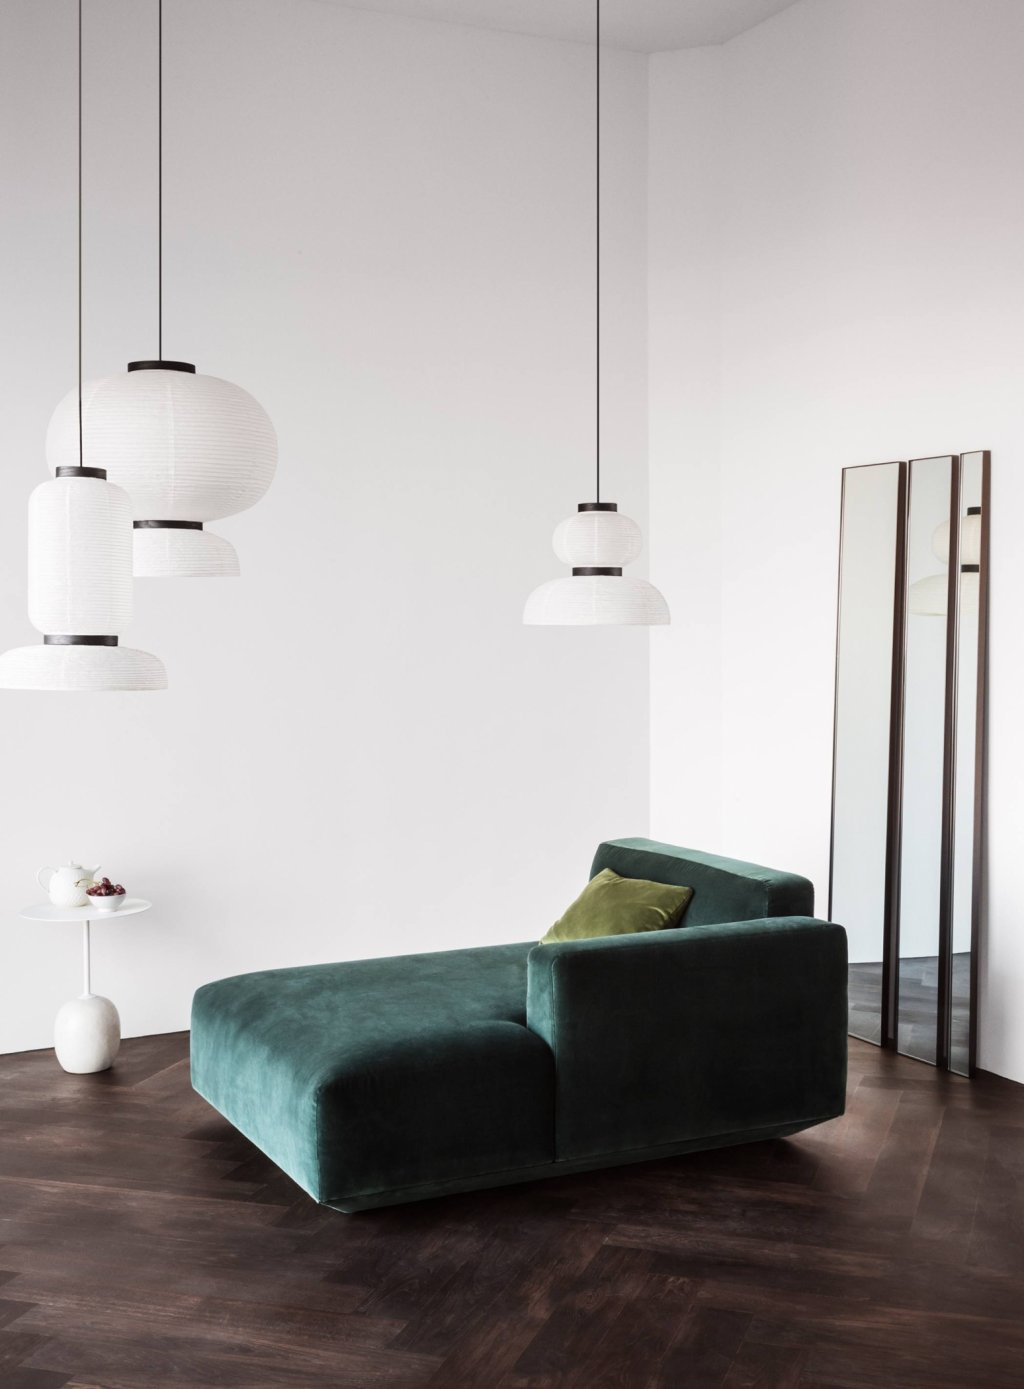 06. &TRADITION - Formakami by Jaime Hayon, pendant lamps